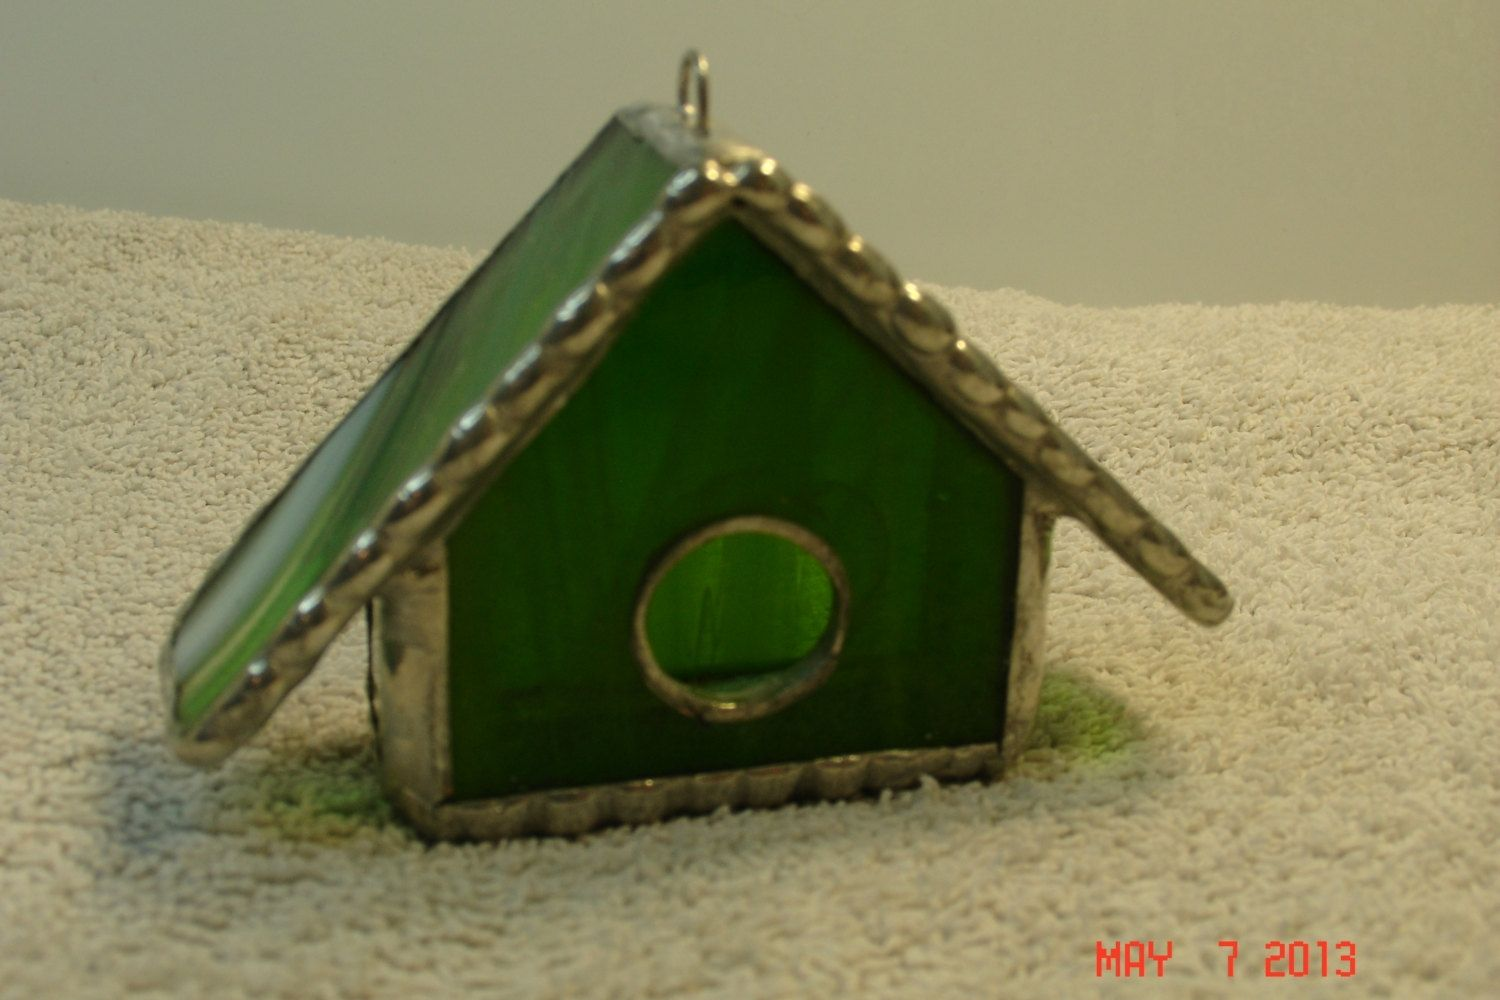 Bright Green House Empty Nest Bird House Ornament In Bright Green With White And Green